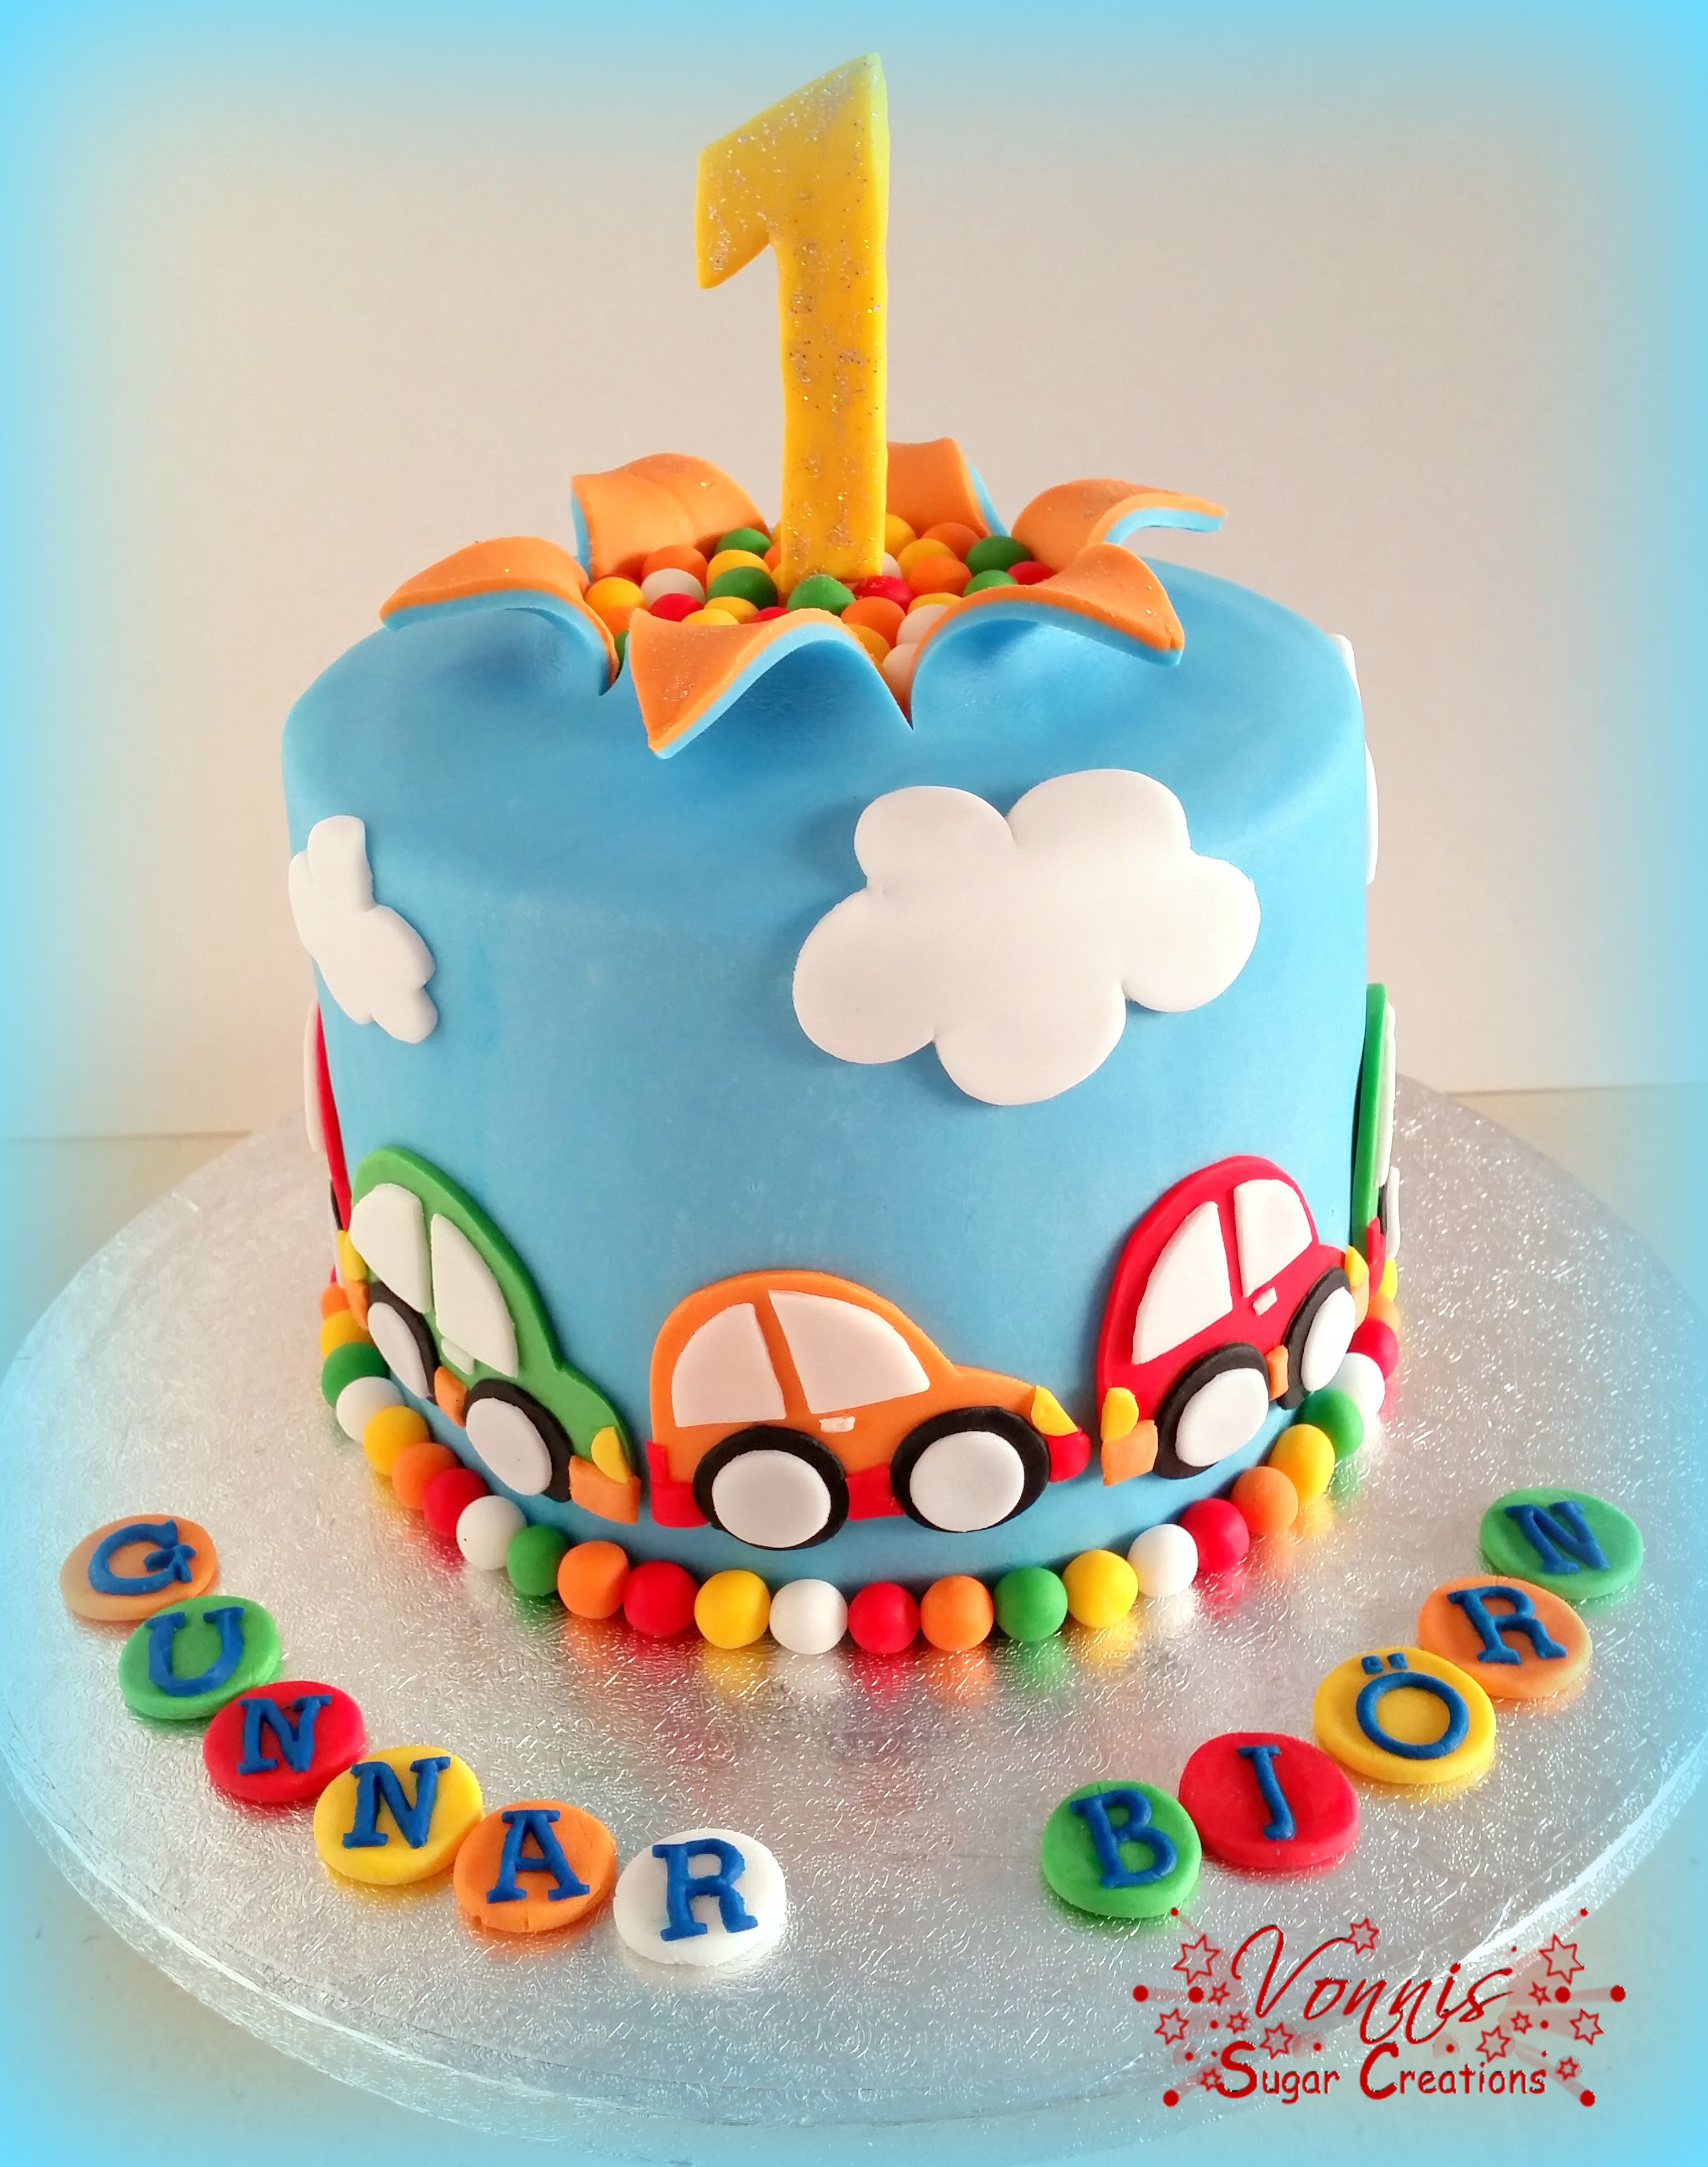 Geburtstag Torte Für Jungs Cars Cake First Birthday Colorful Explosion Cake Boy Auto Torte